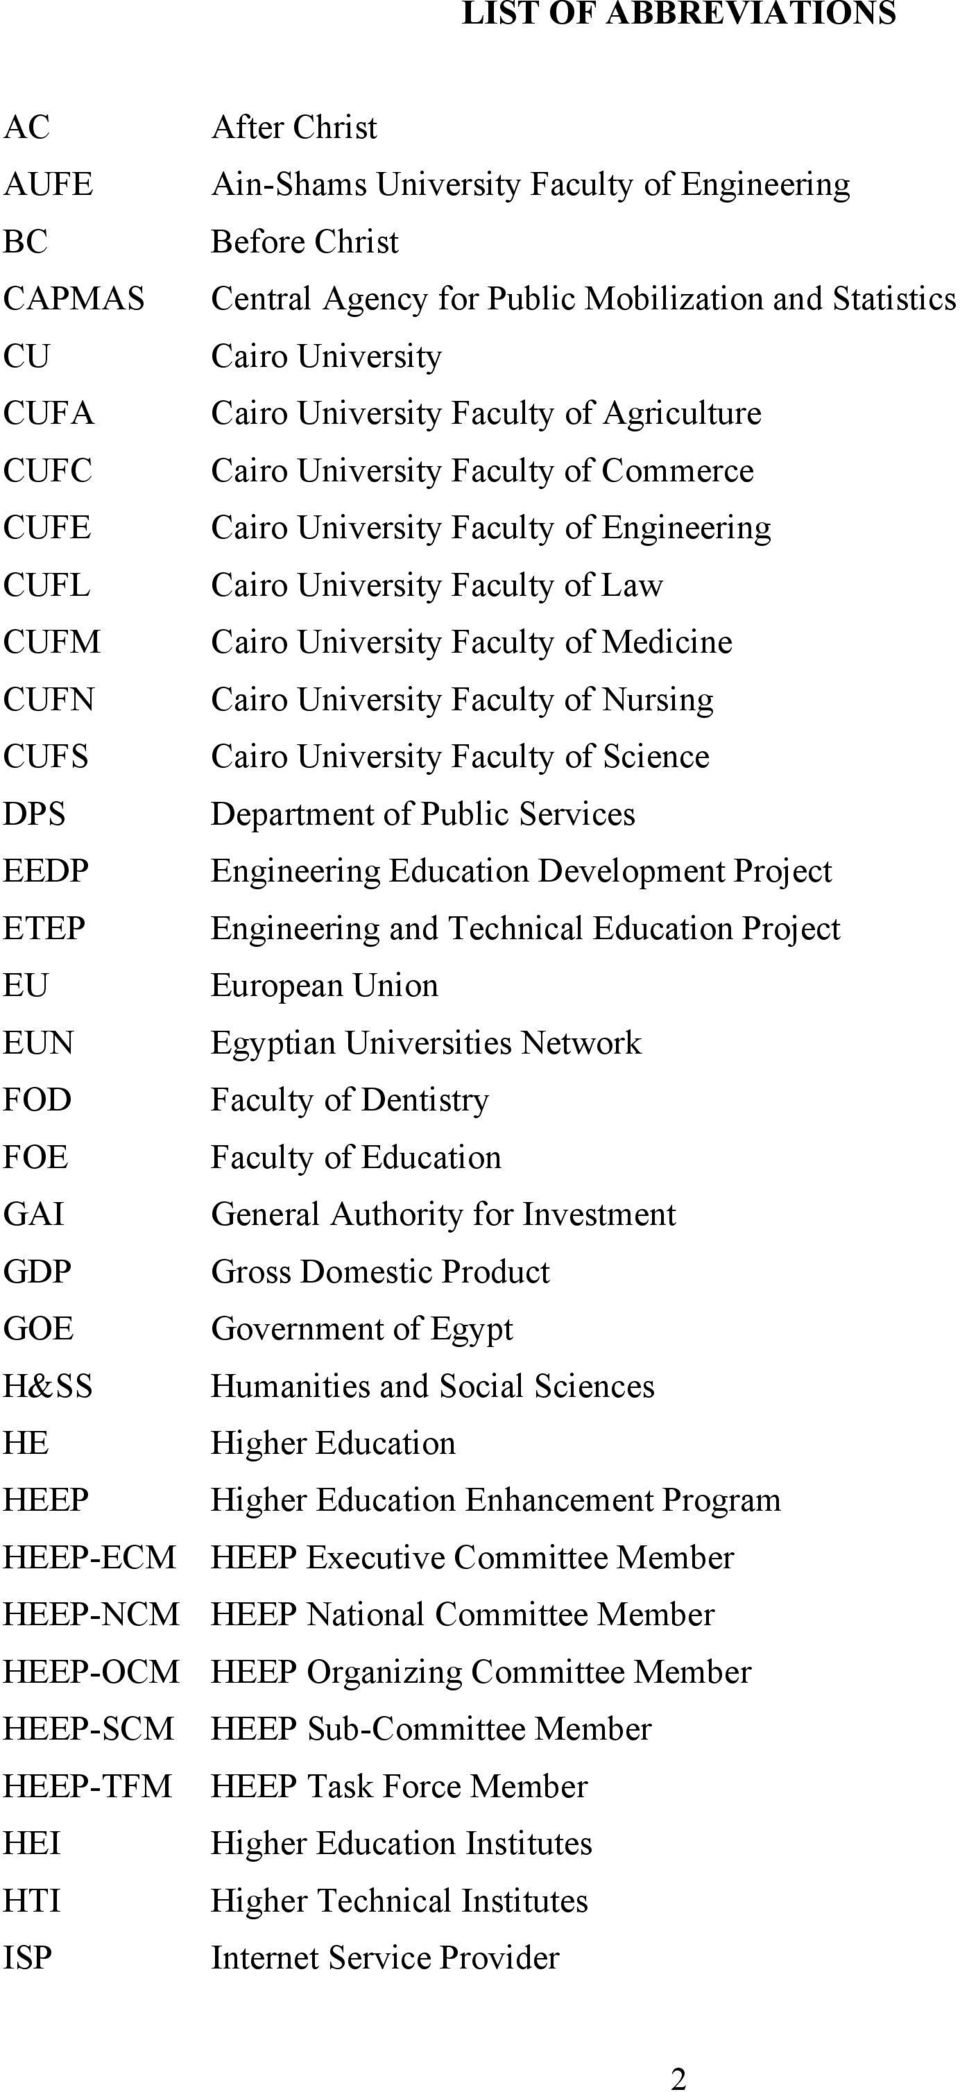 CUFN Cairo University Faculty of Nursing CUFS Cairo University Faculty of Science DPS Department of Public Services EEDP Engineering Education Development Project ETEP Engineering and Technical